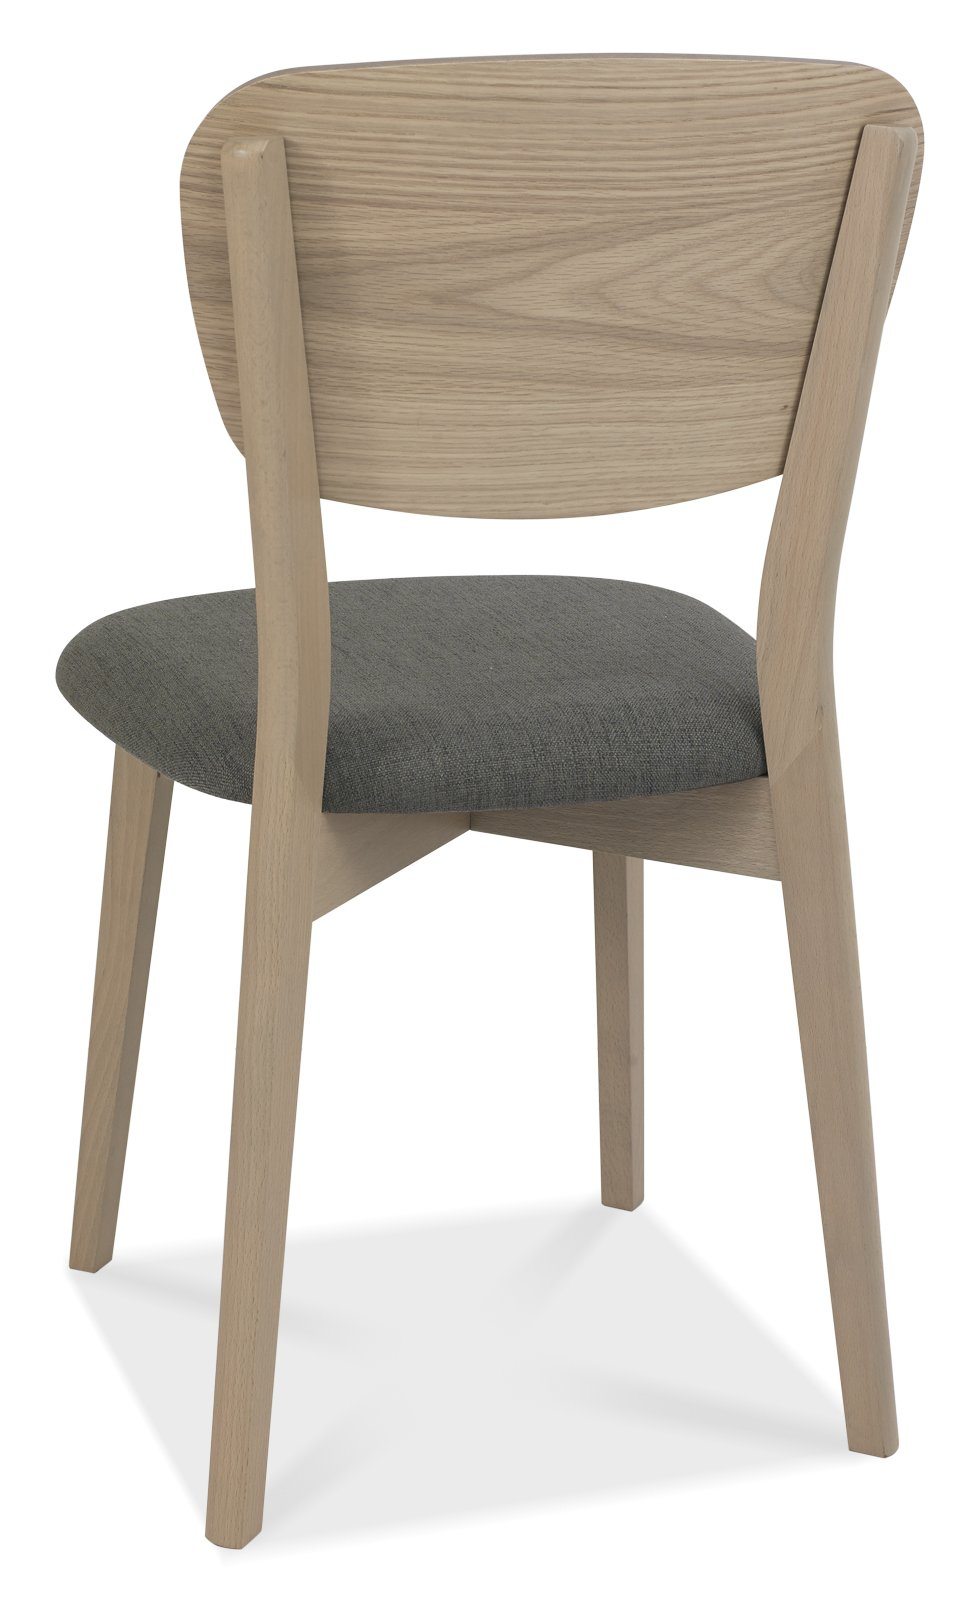 RETRO WOODEN DINING CHAIR - BACK DETAIL